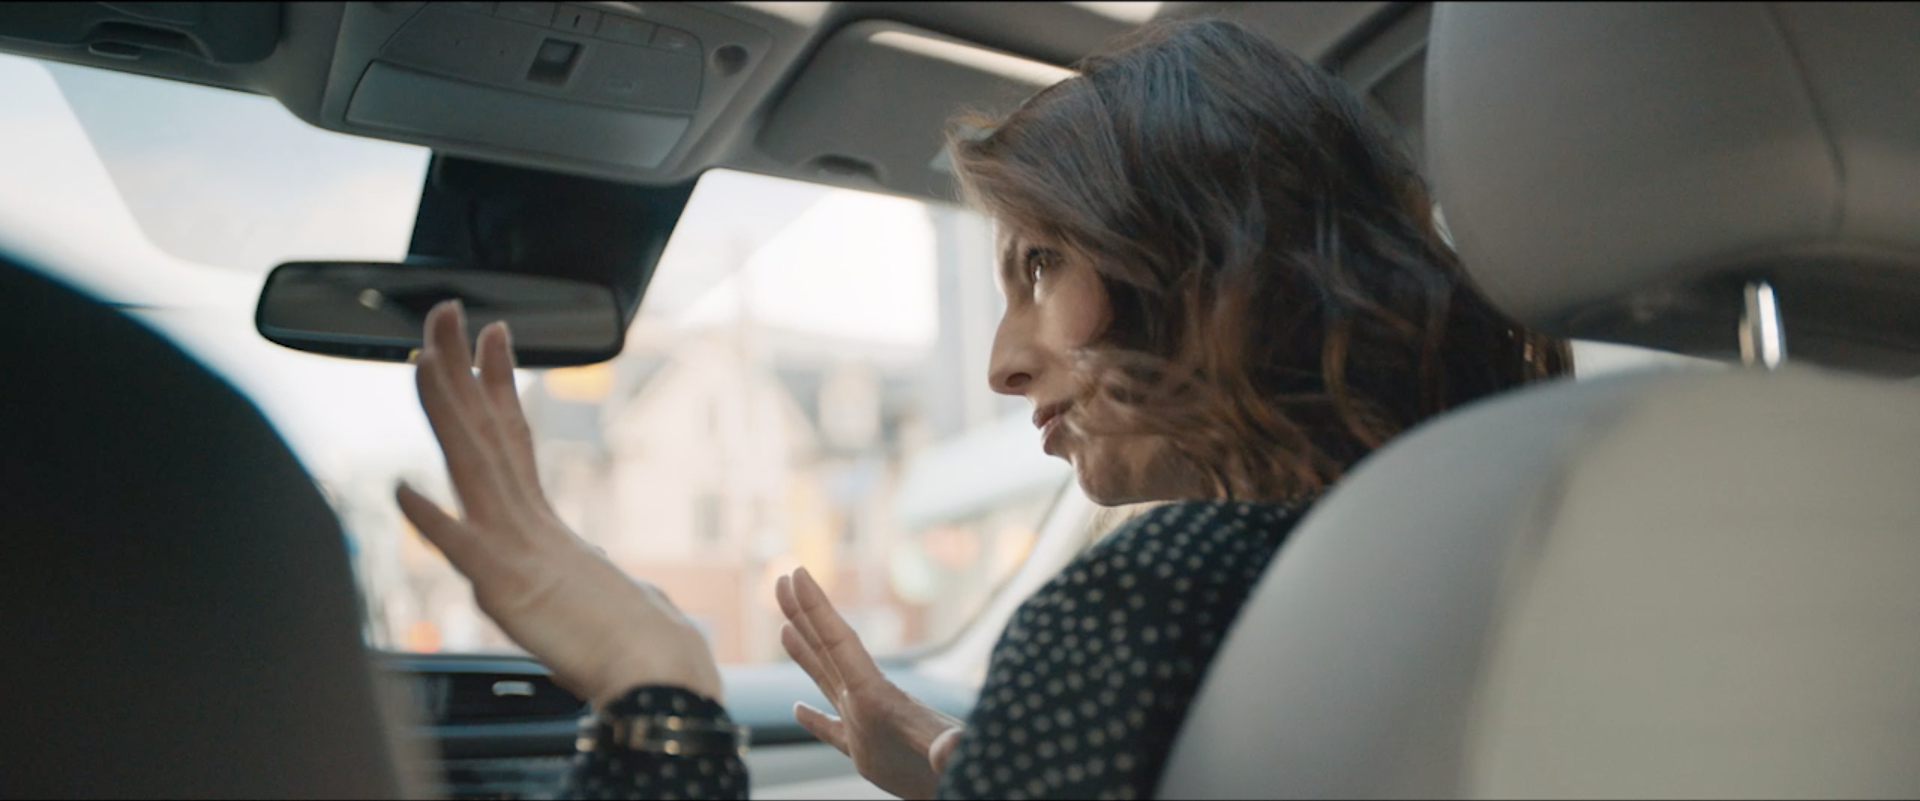 Juniper Park\TBWA Puts an Emphasis on Technology that Connects Us in New Nissan Canada Campaign